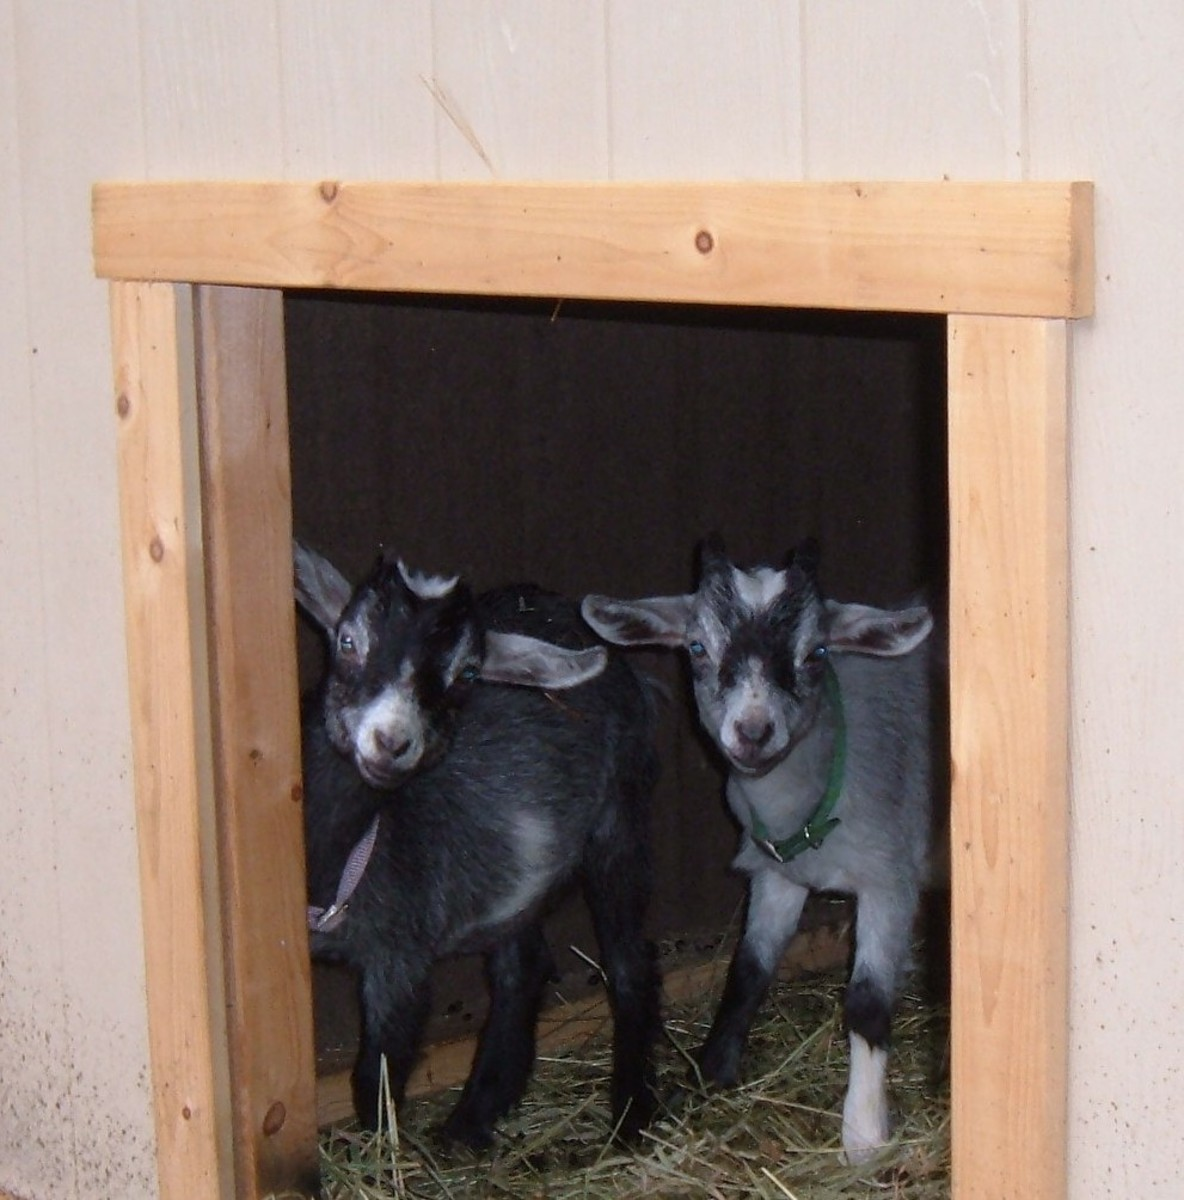 Oliver and Delilah like their new goat house